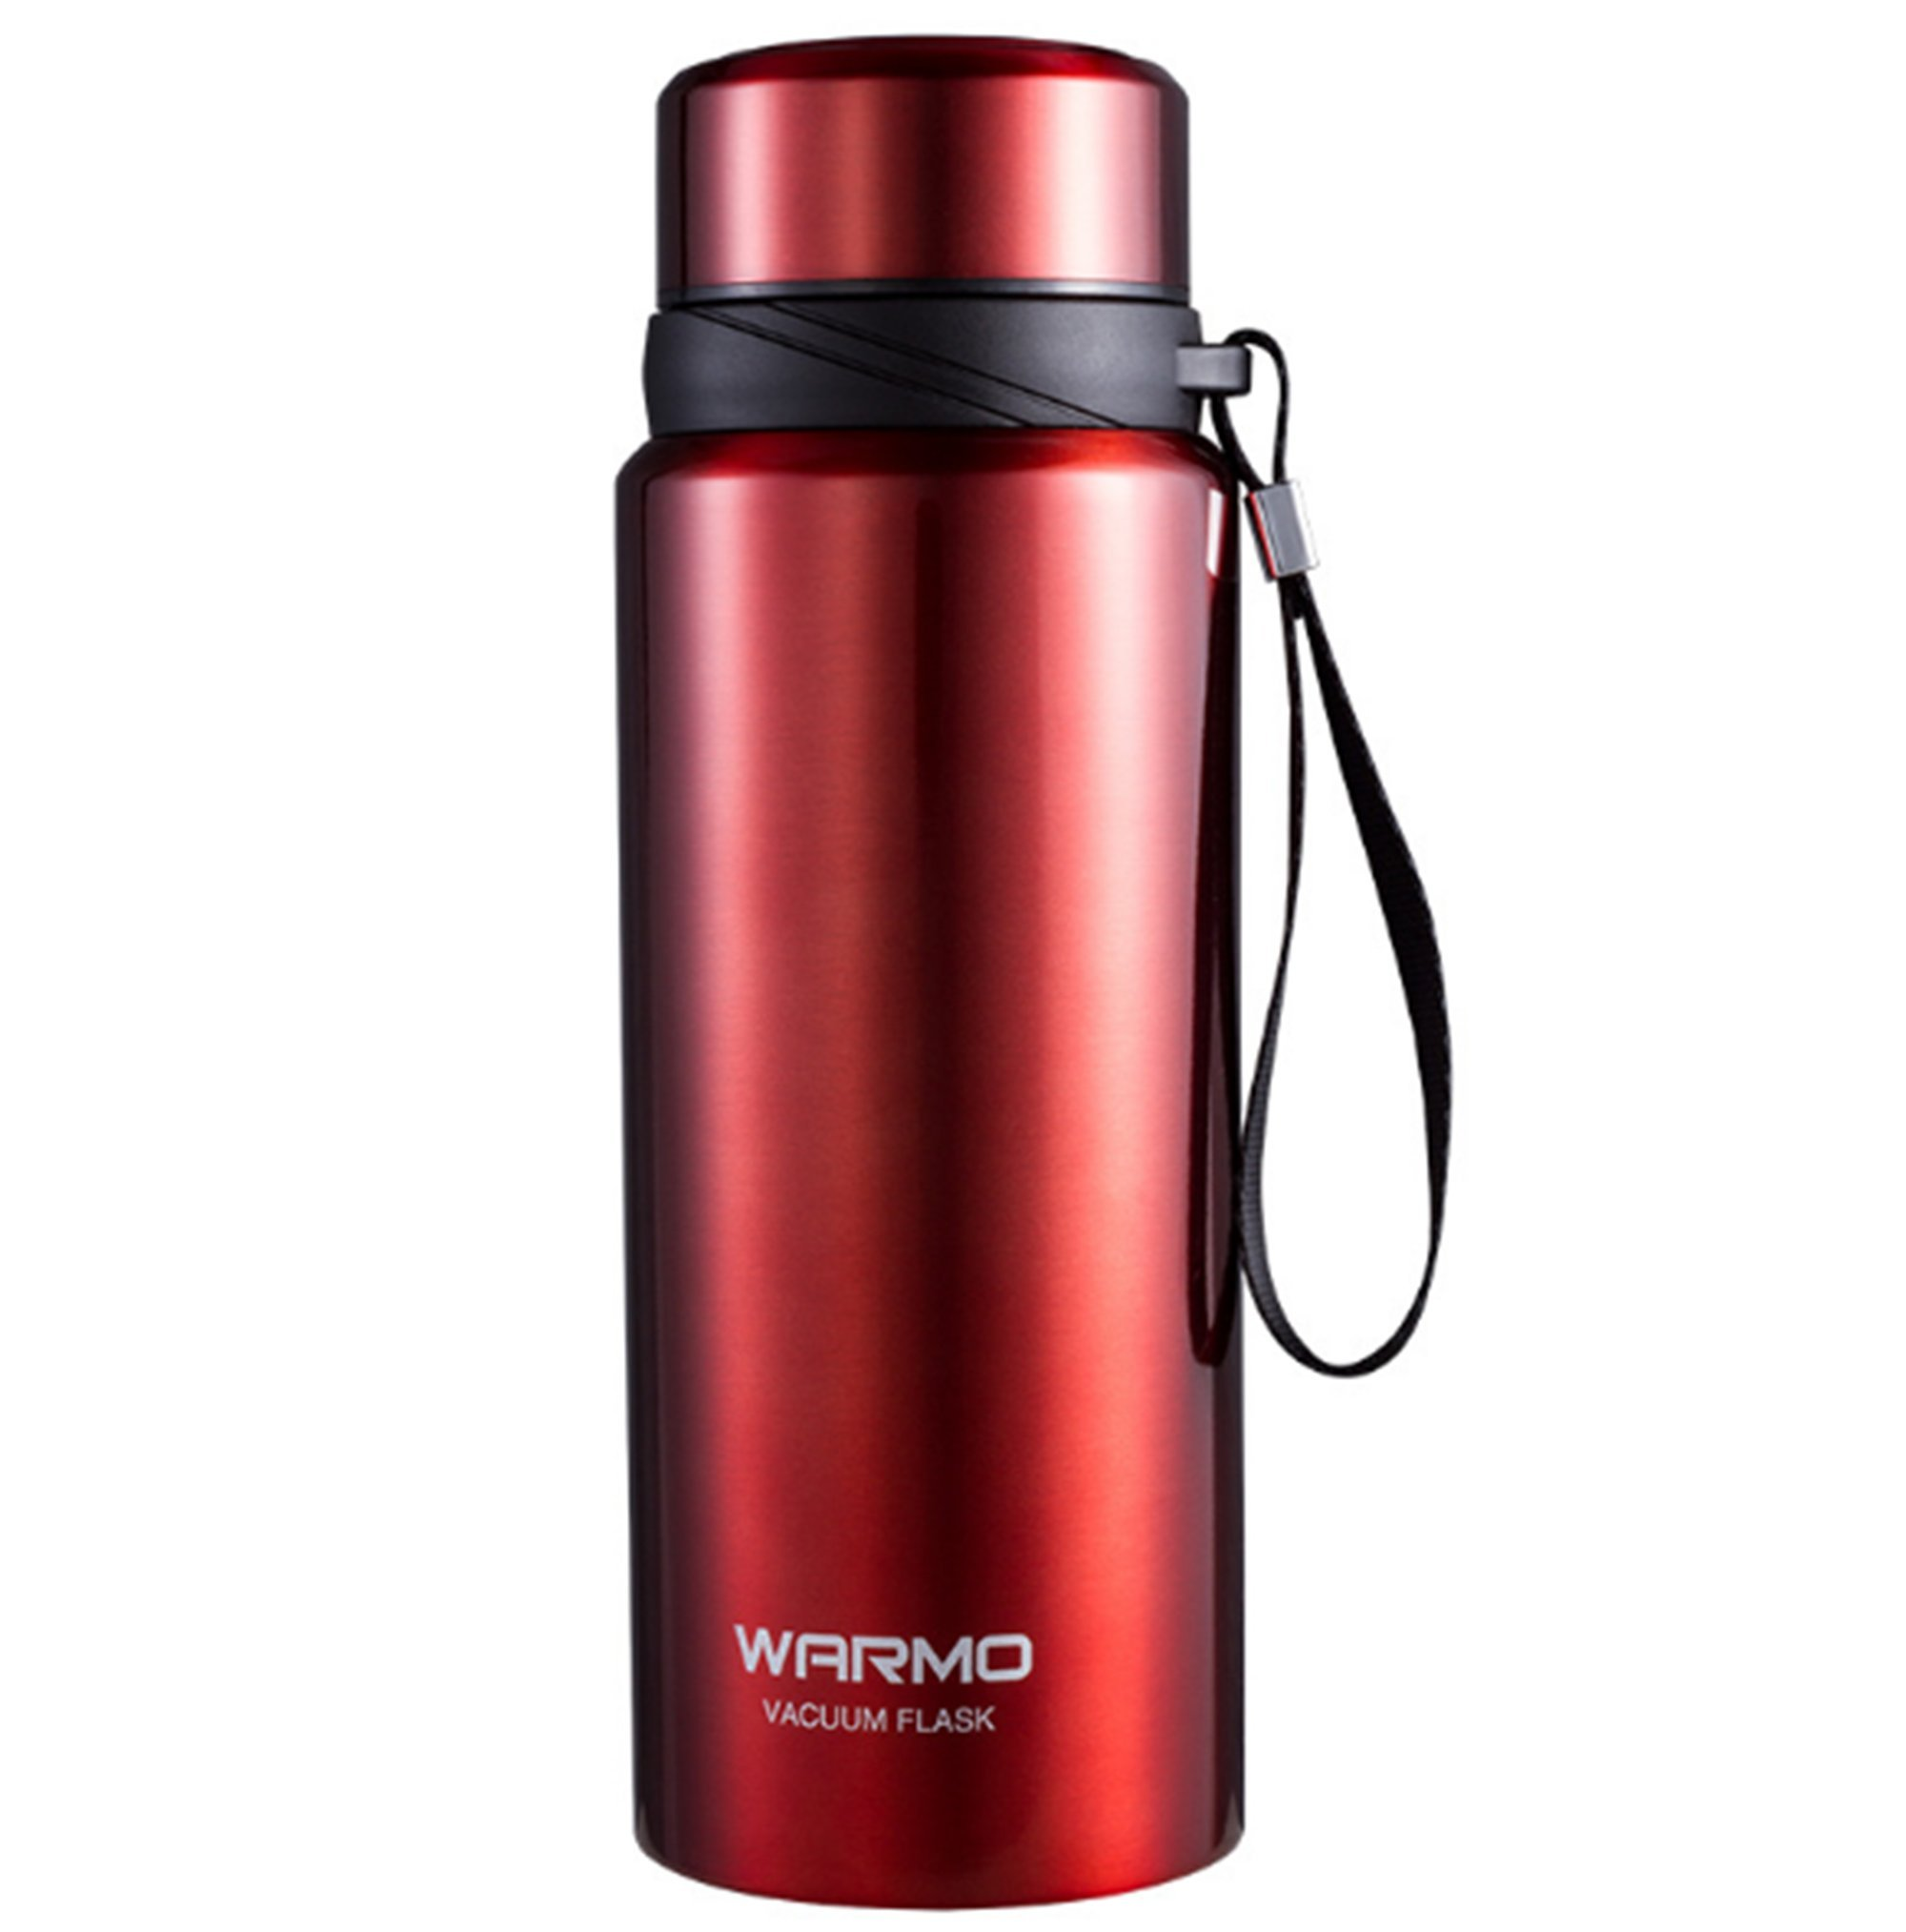 NOMSOCR 27 oz Water Bottle withStrap, Stainless Steel Insulated Water Flask with Leak Proof No Spill Lid for Coffee Hot Cold Liquids, Sport Water Mug for Outdoor Running Cycling (Red, 27-Ounce)